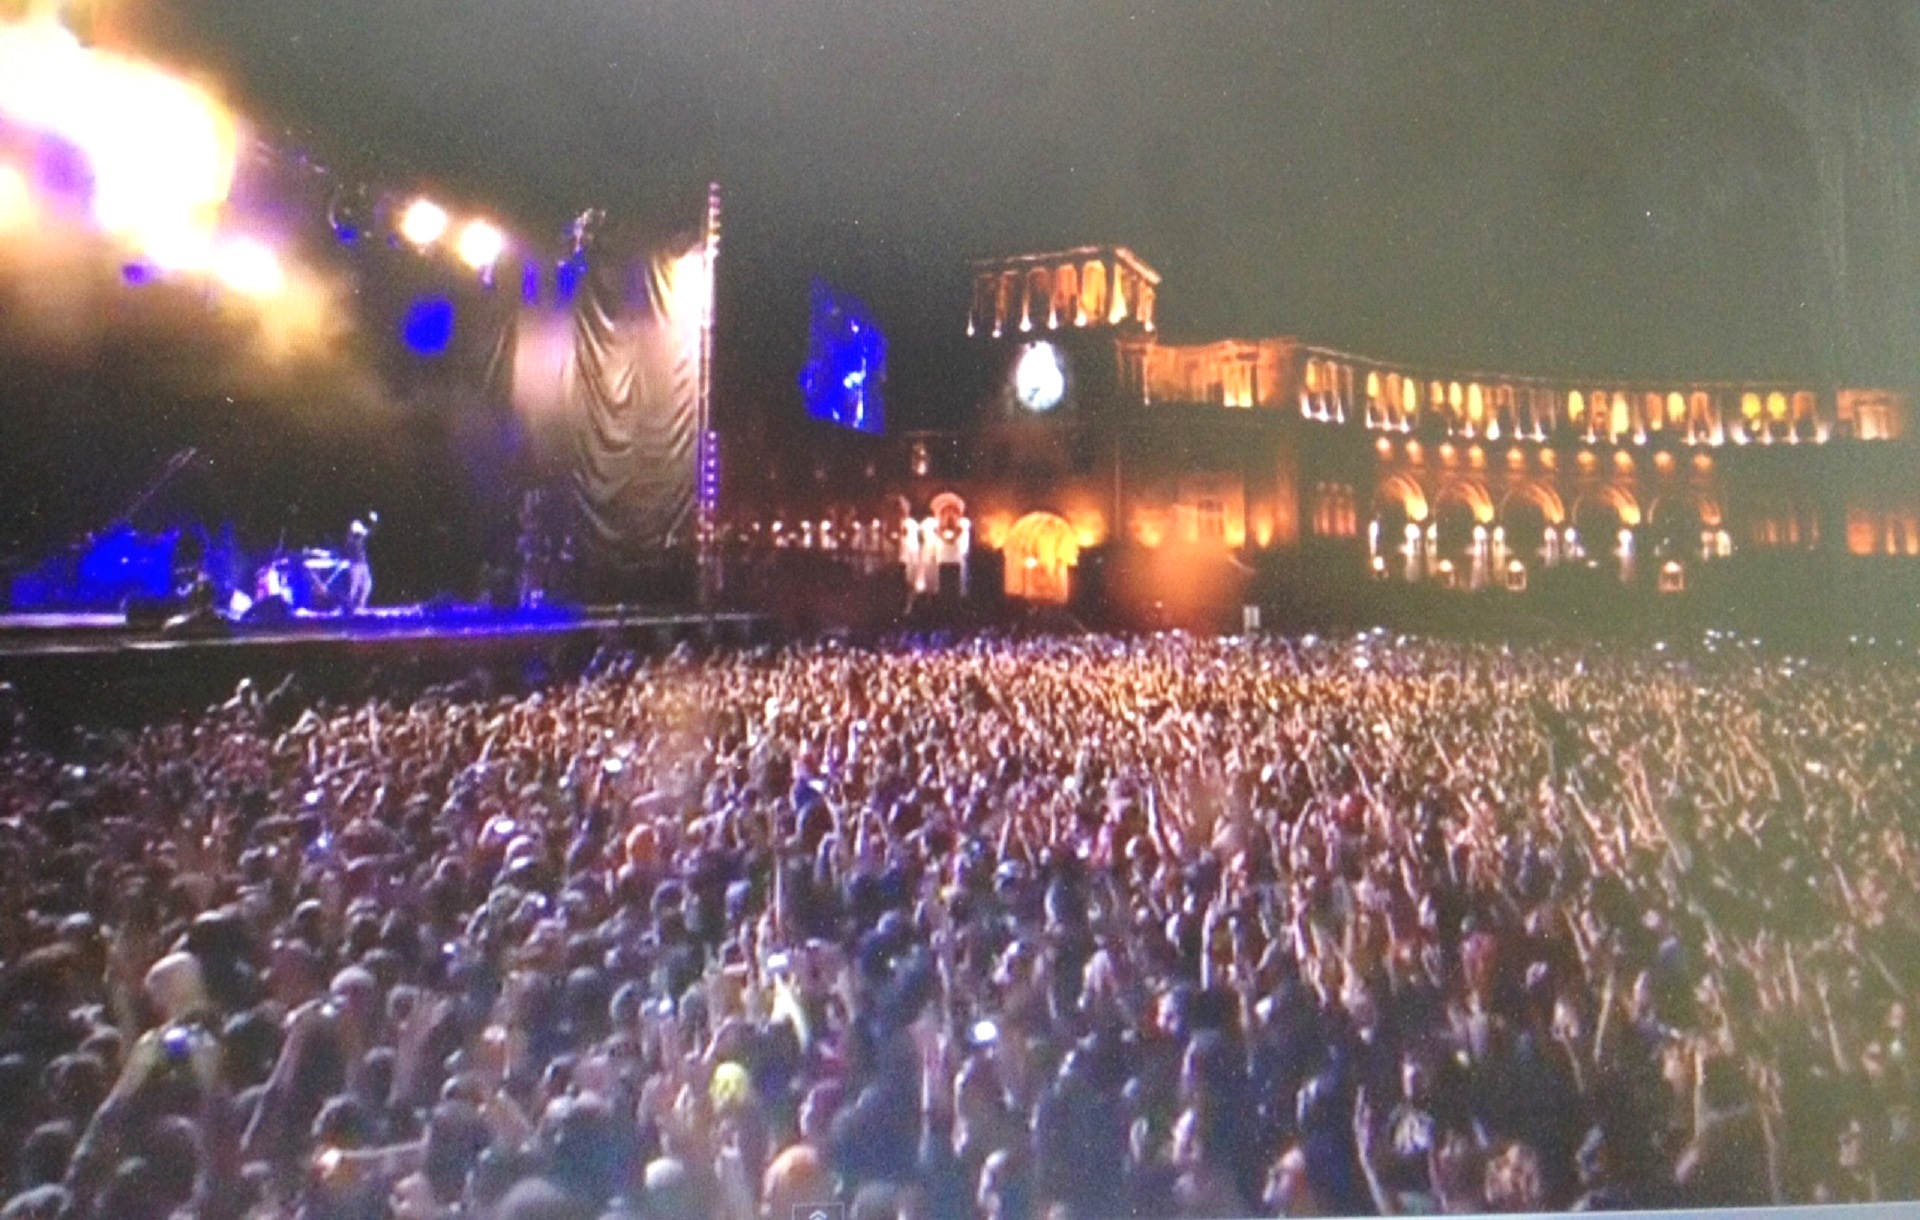 Screen shot from the web simulcast of System of a Down's April 23 outdoor performance in Yerevan, Armenia's capital. It was the band's first ever performance in Armenia.